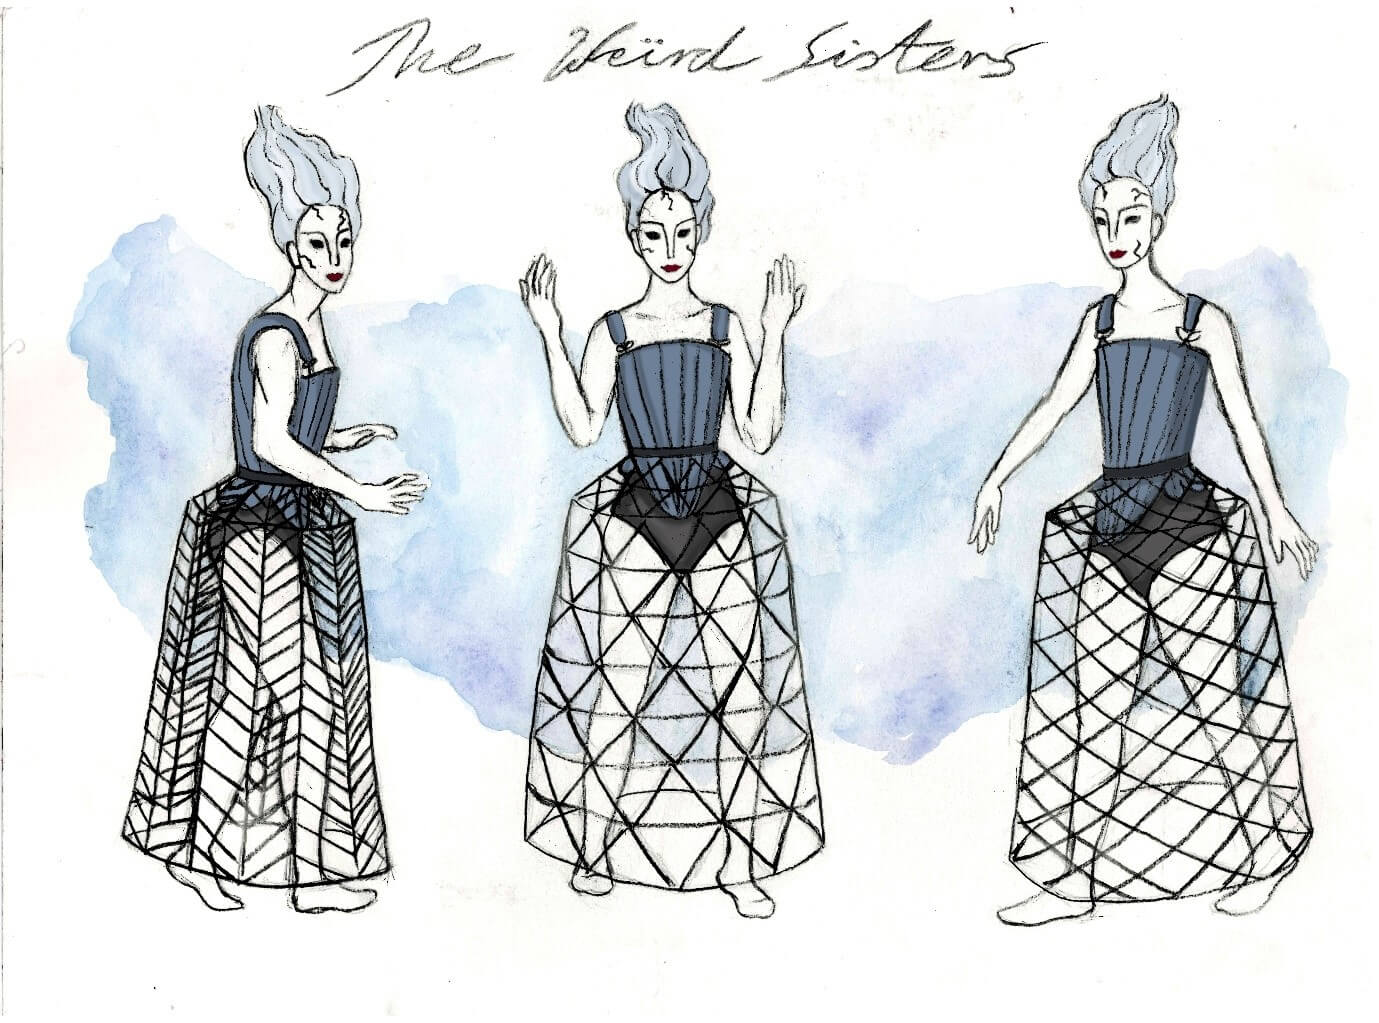 Detailed drawing of a dress on three characters